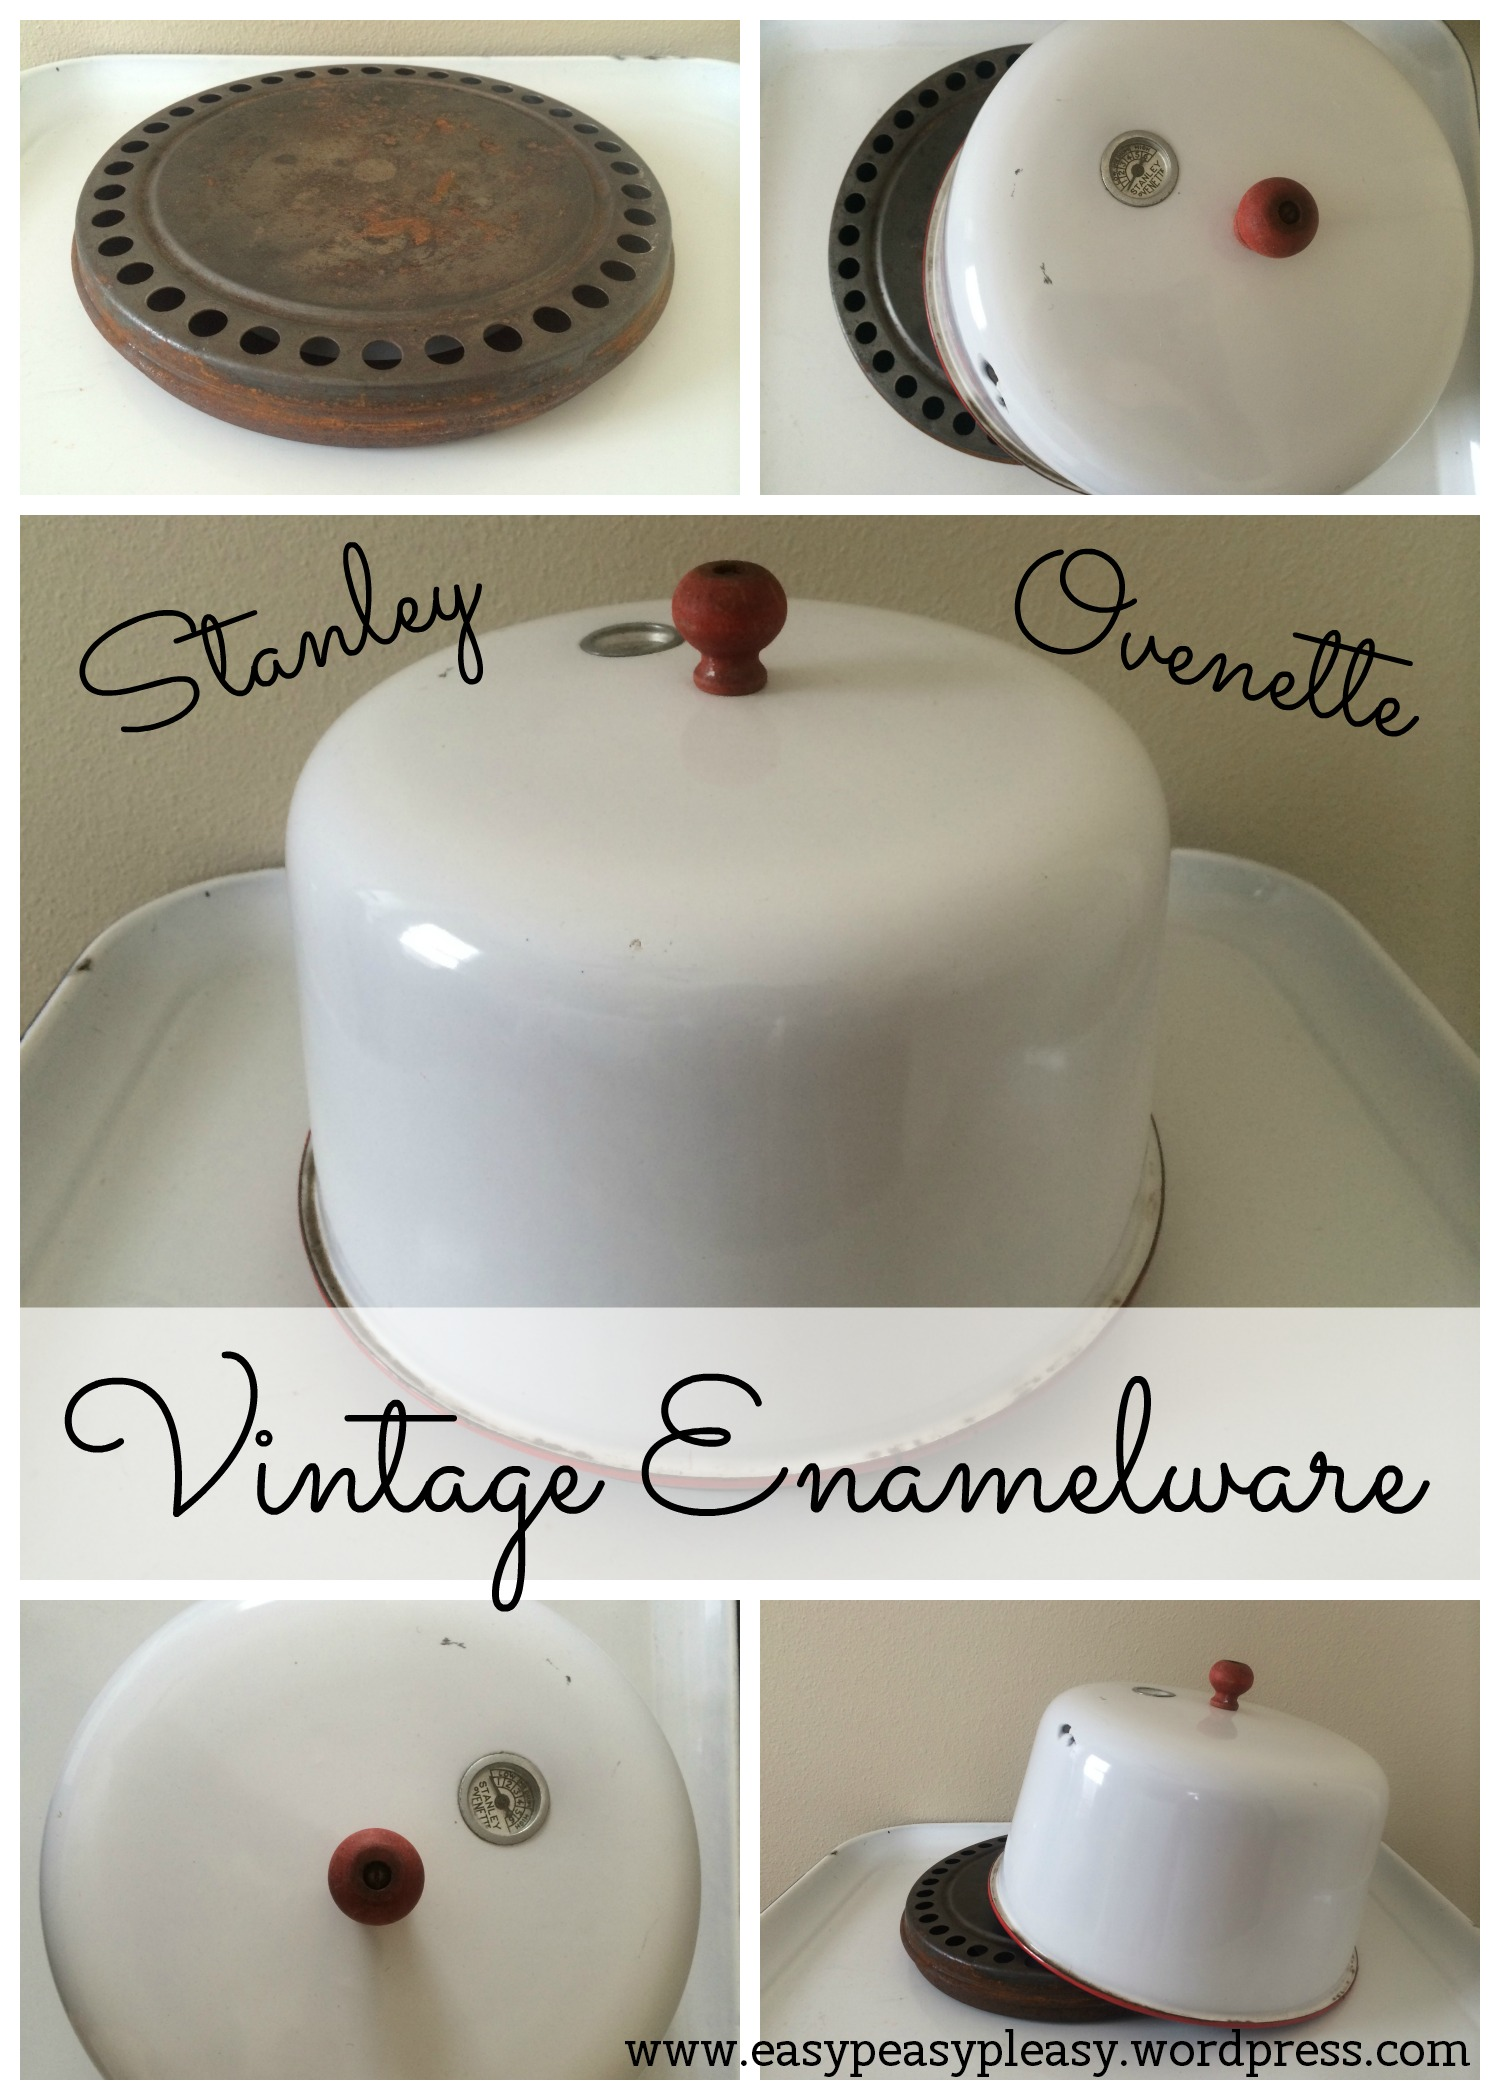 Learn More about this Vintage Enamelware Stanley Ovenette at https://easypeasypleasy.com